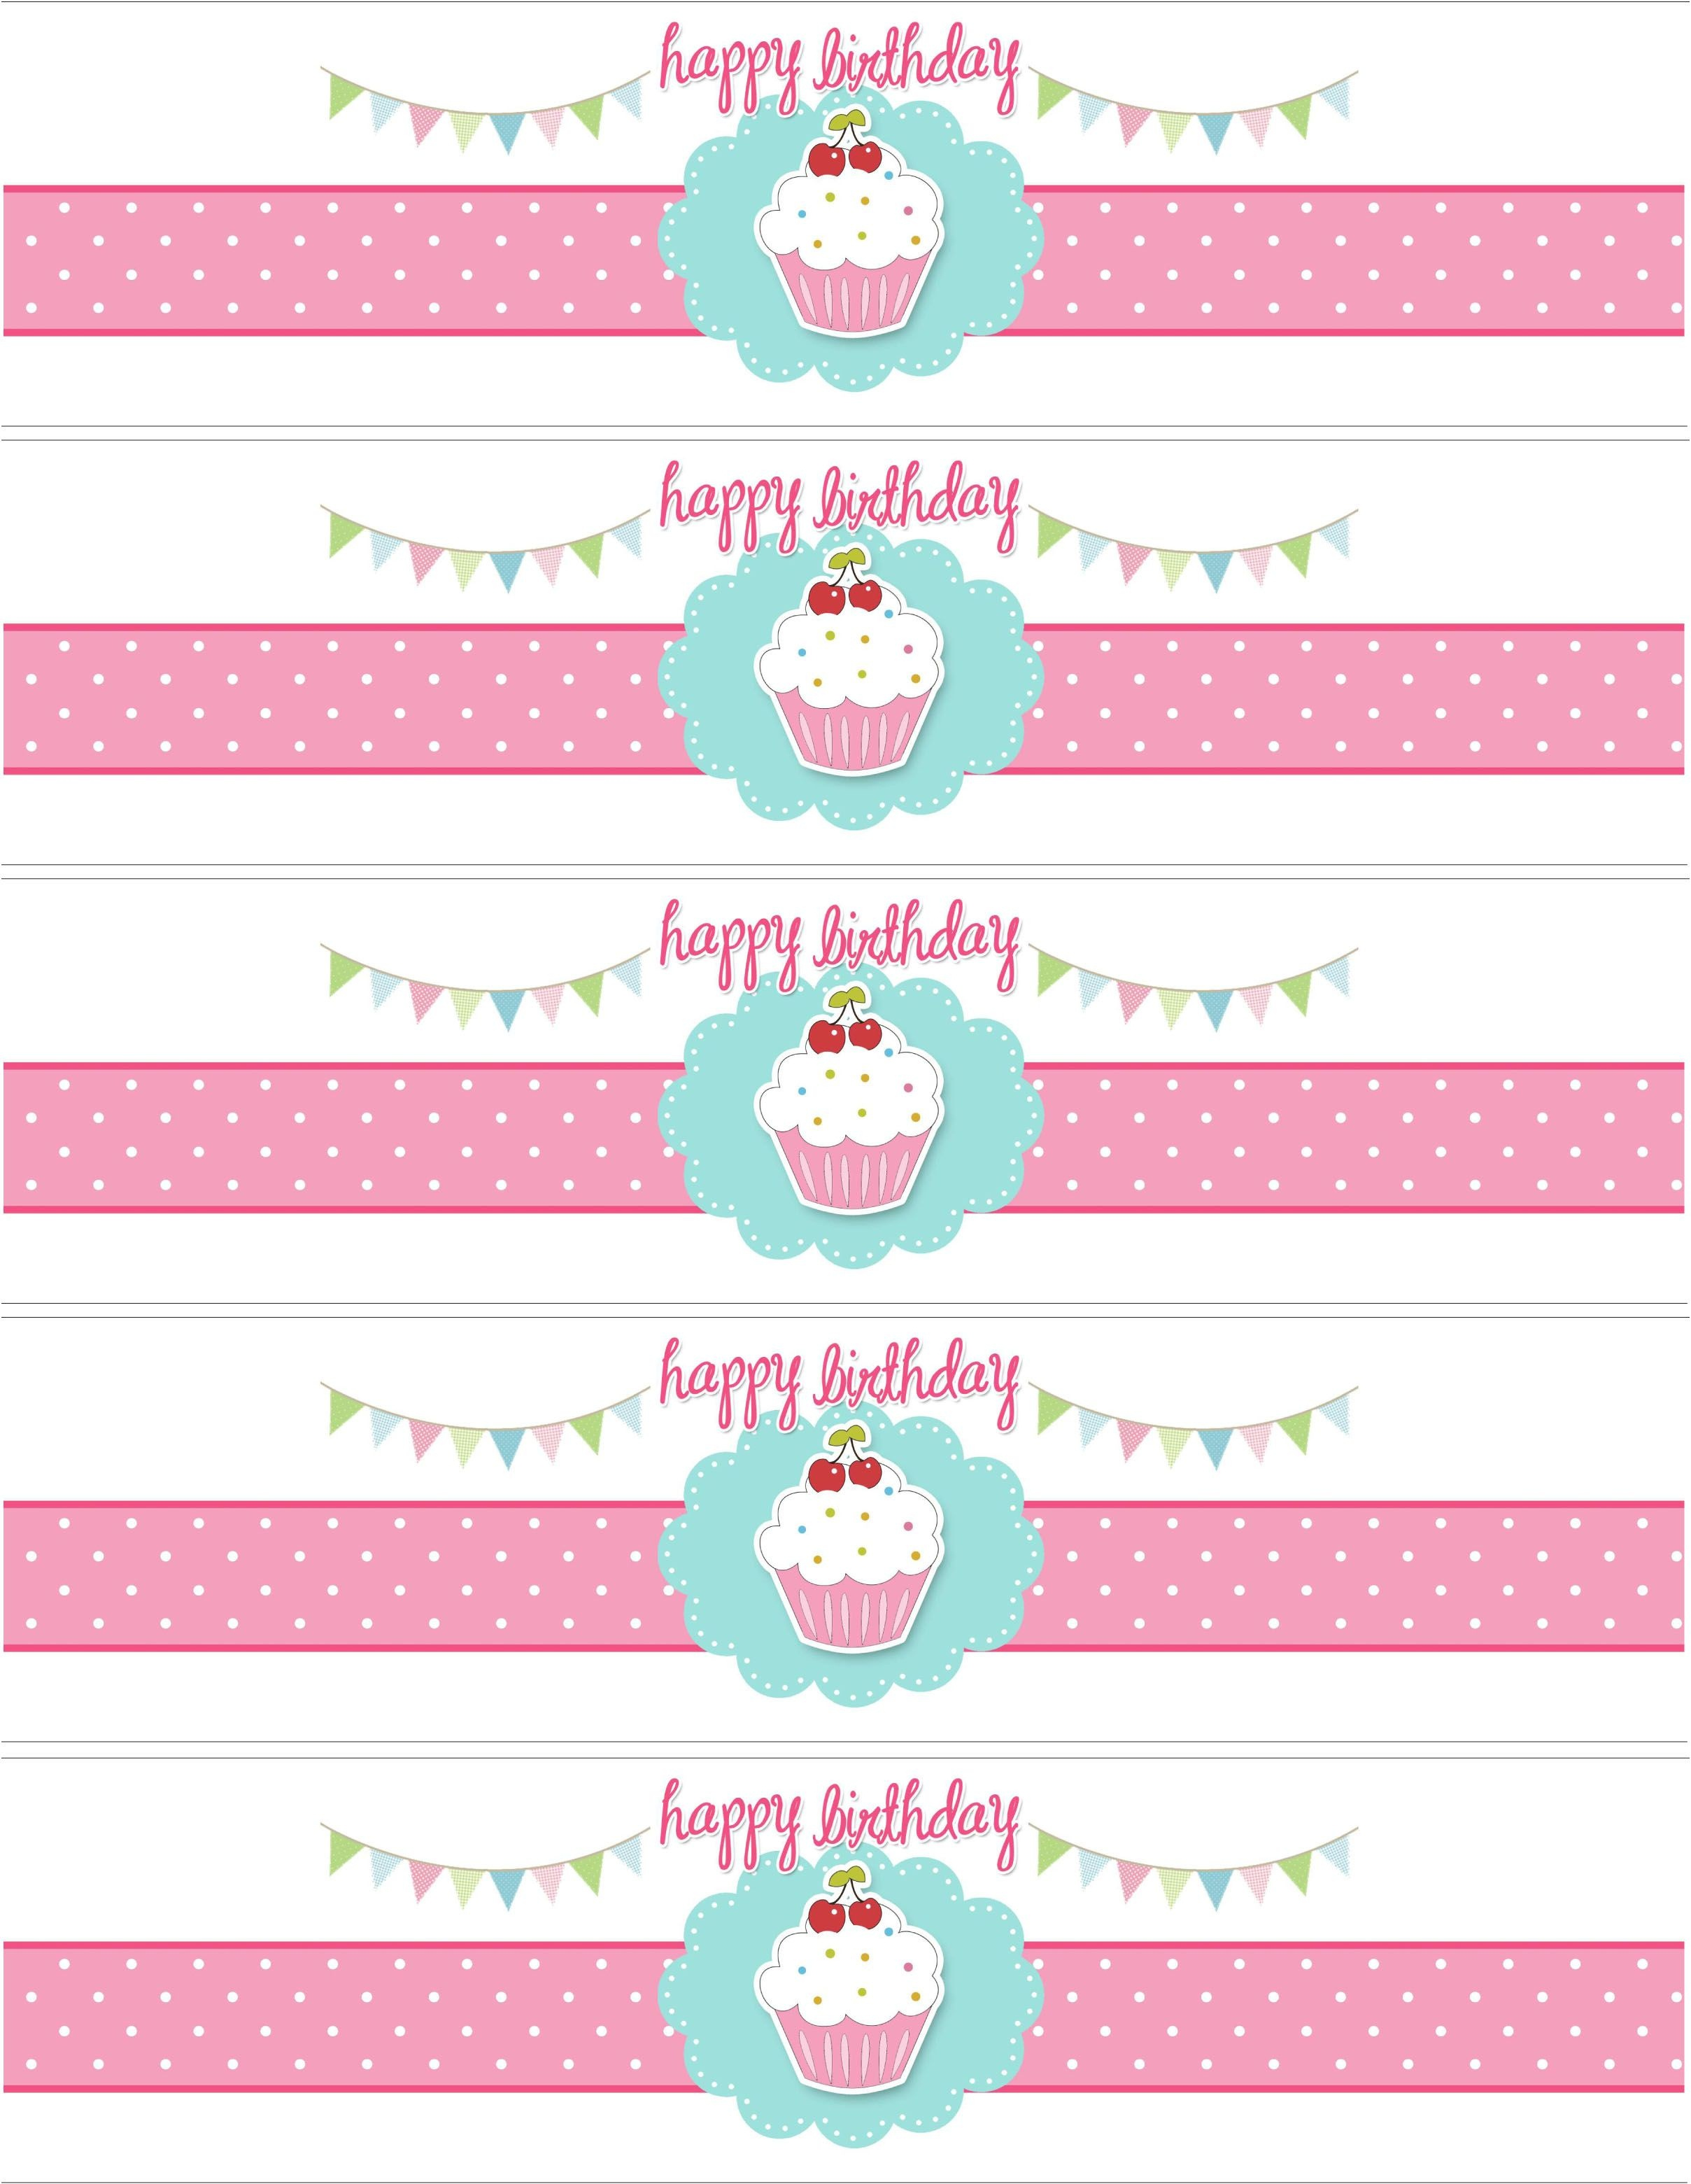 Cupcake Birthday Party With Free Printables | Party Ideas - Free Printable Water Bottle Labels For Birthday